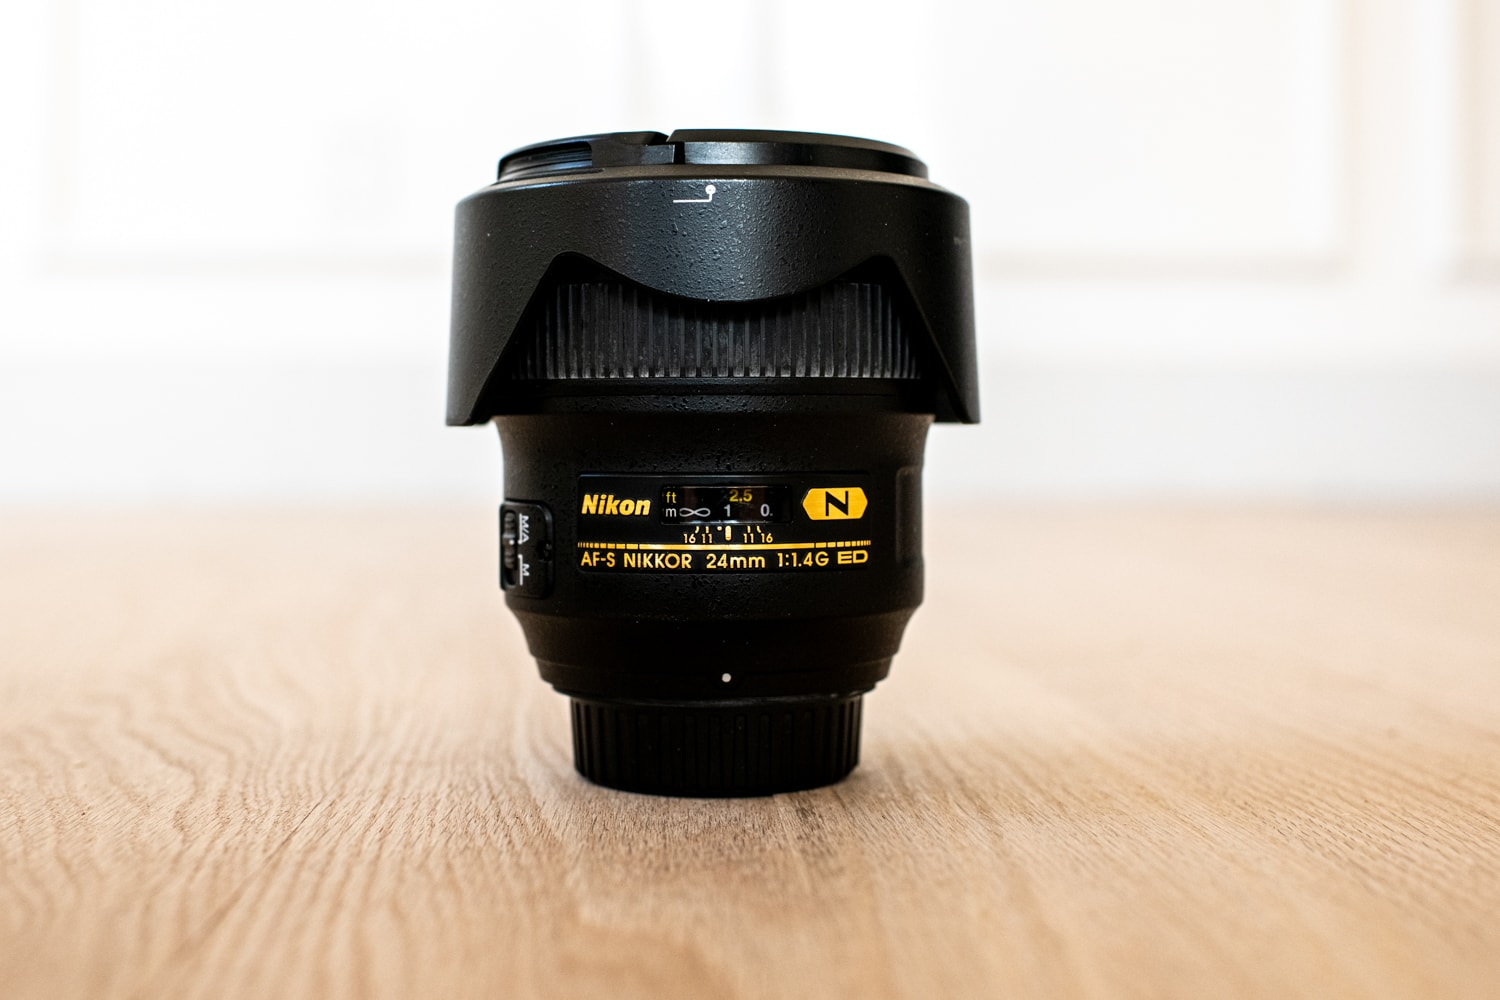 Nikkor 24mm 1.4 lens for wedding photography.